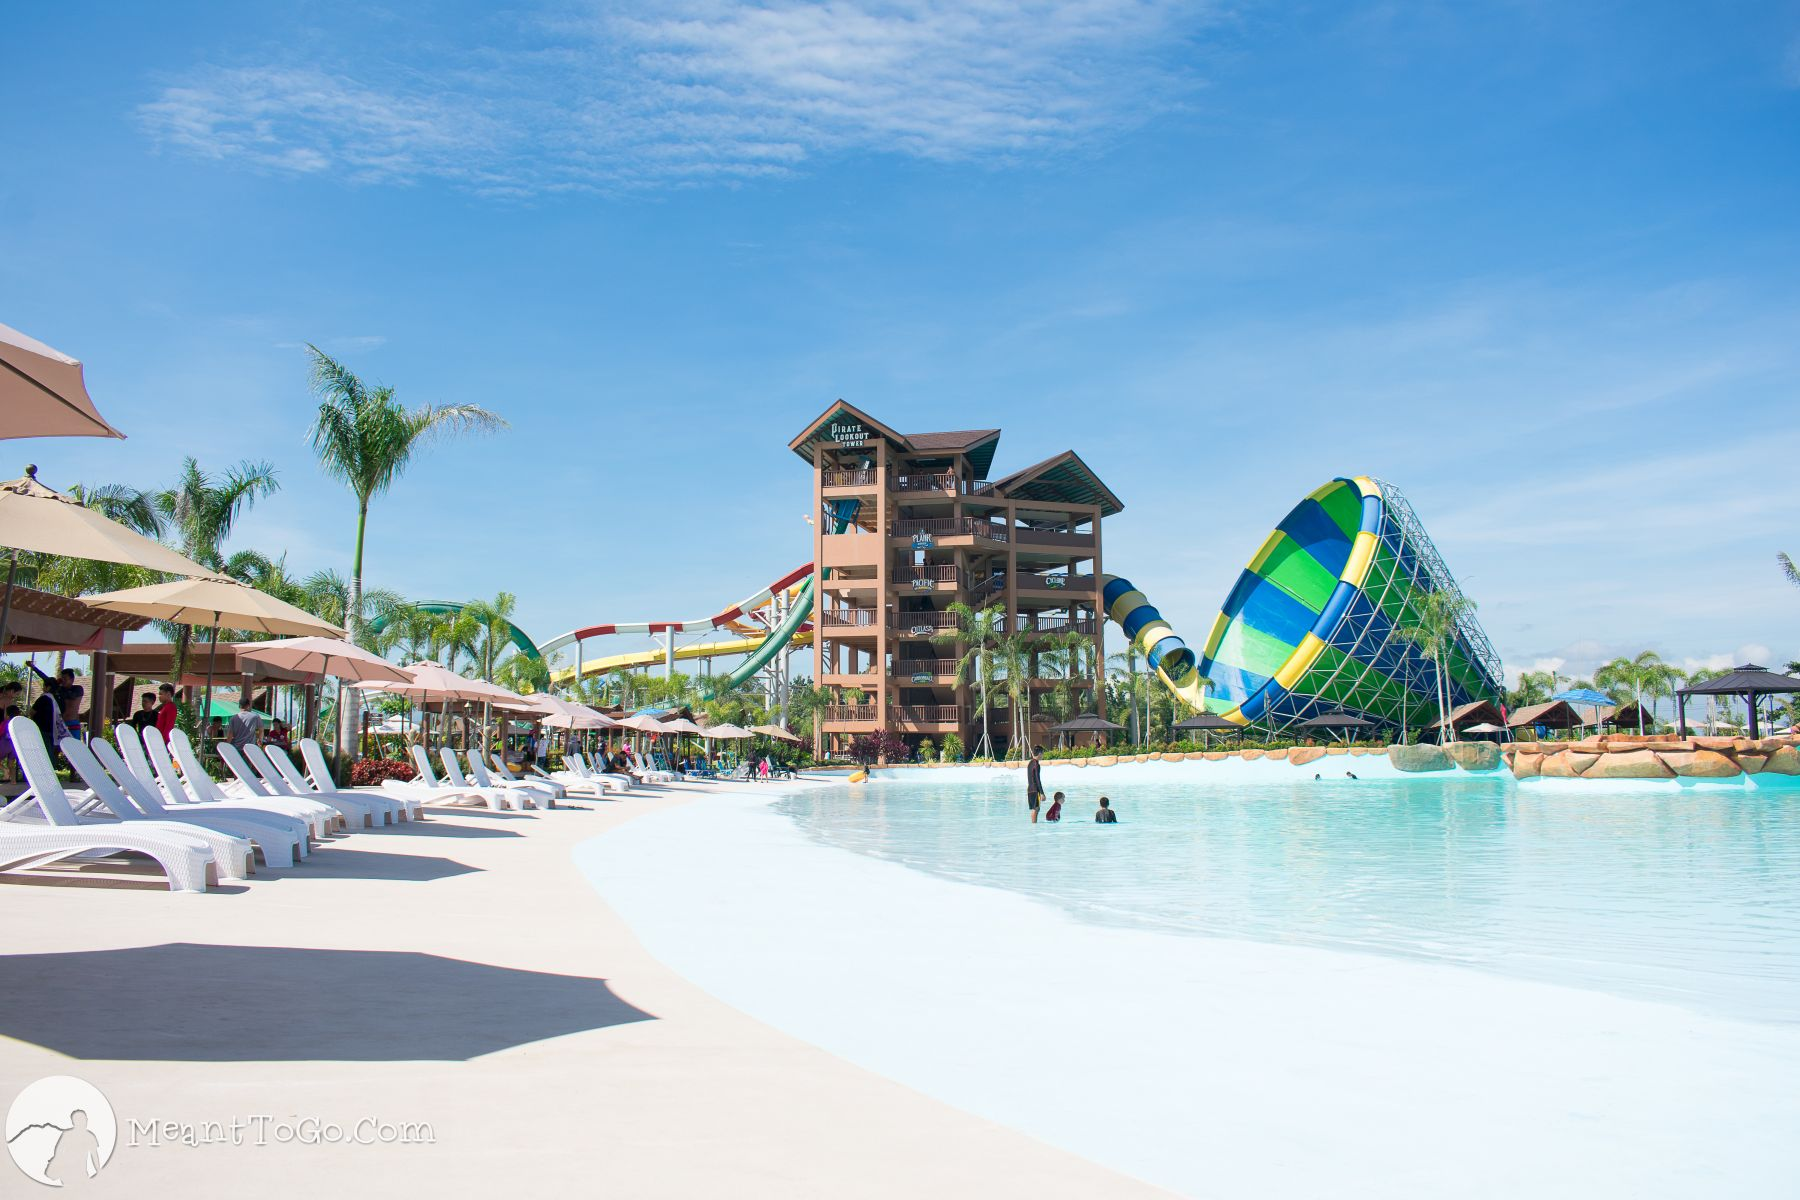 The Buccaneer Bay at Seven Seas Waterpark and Resort